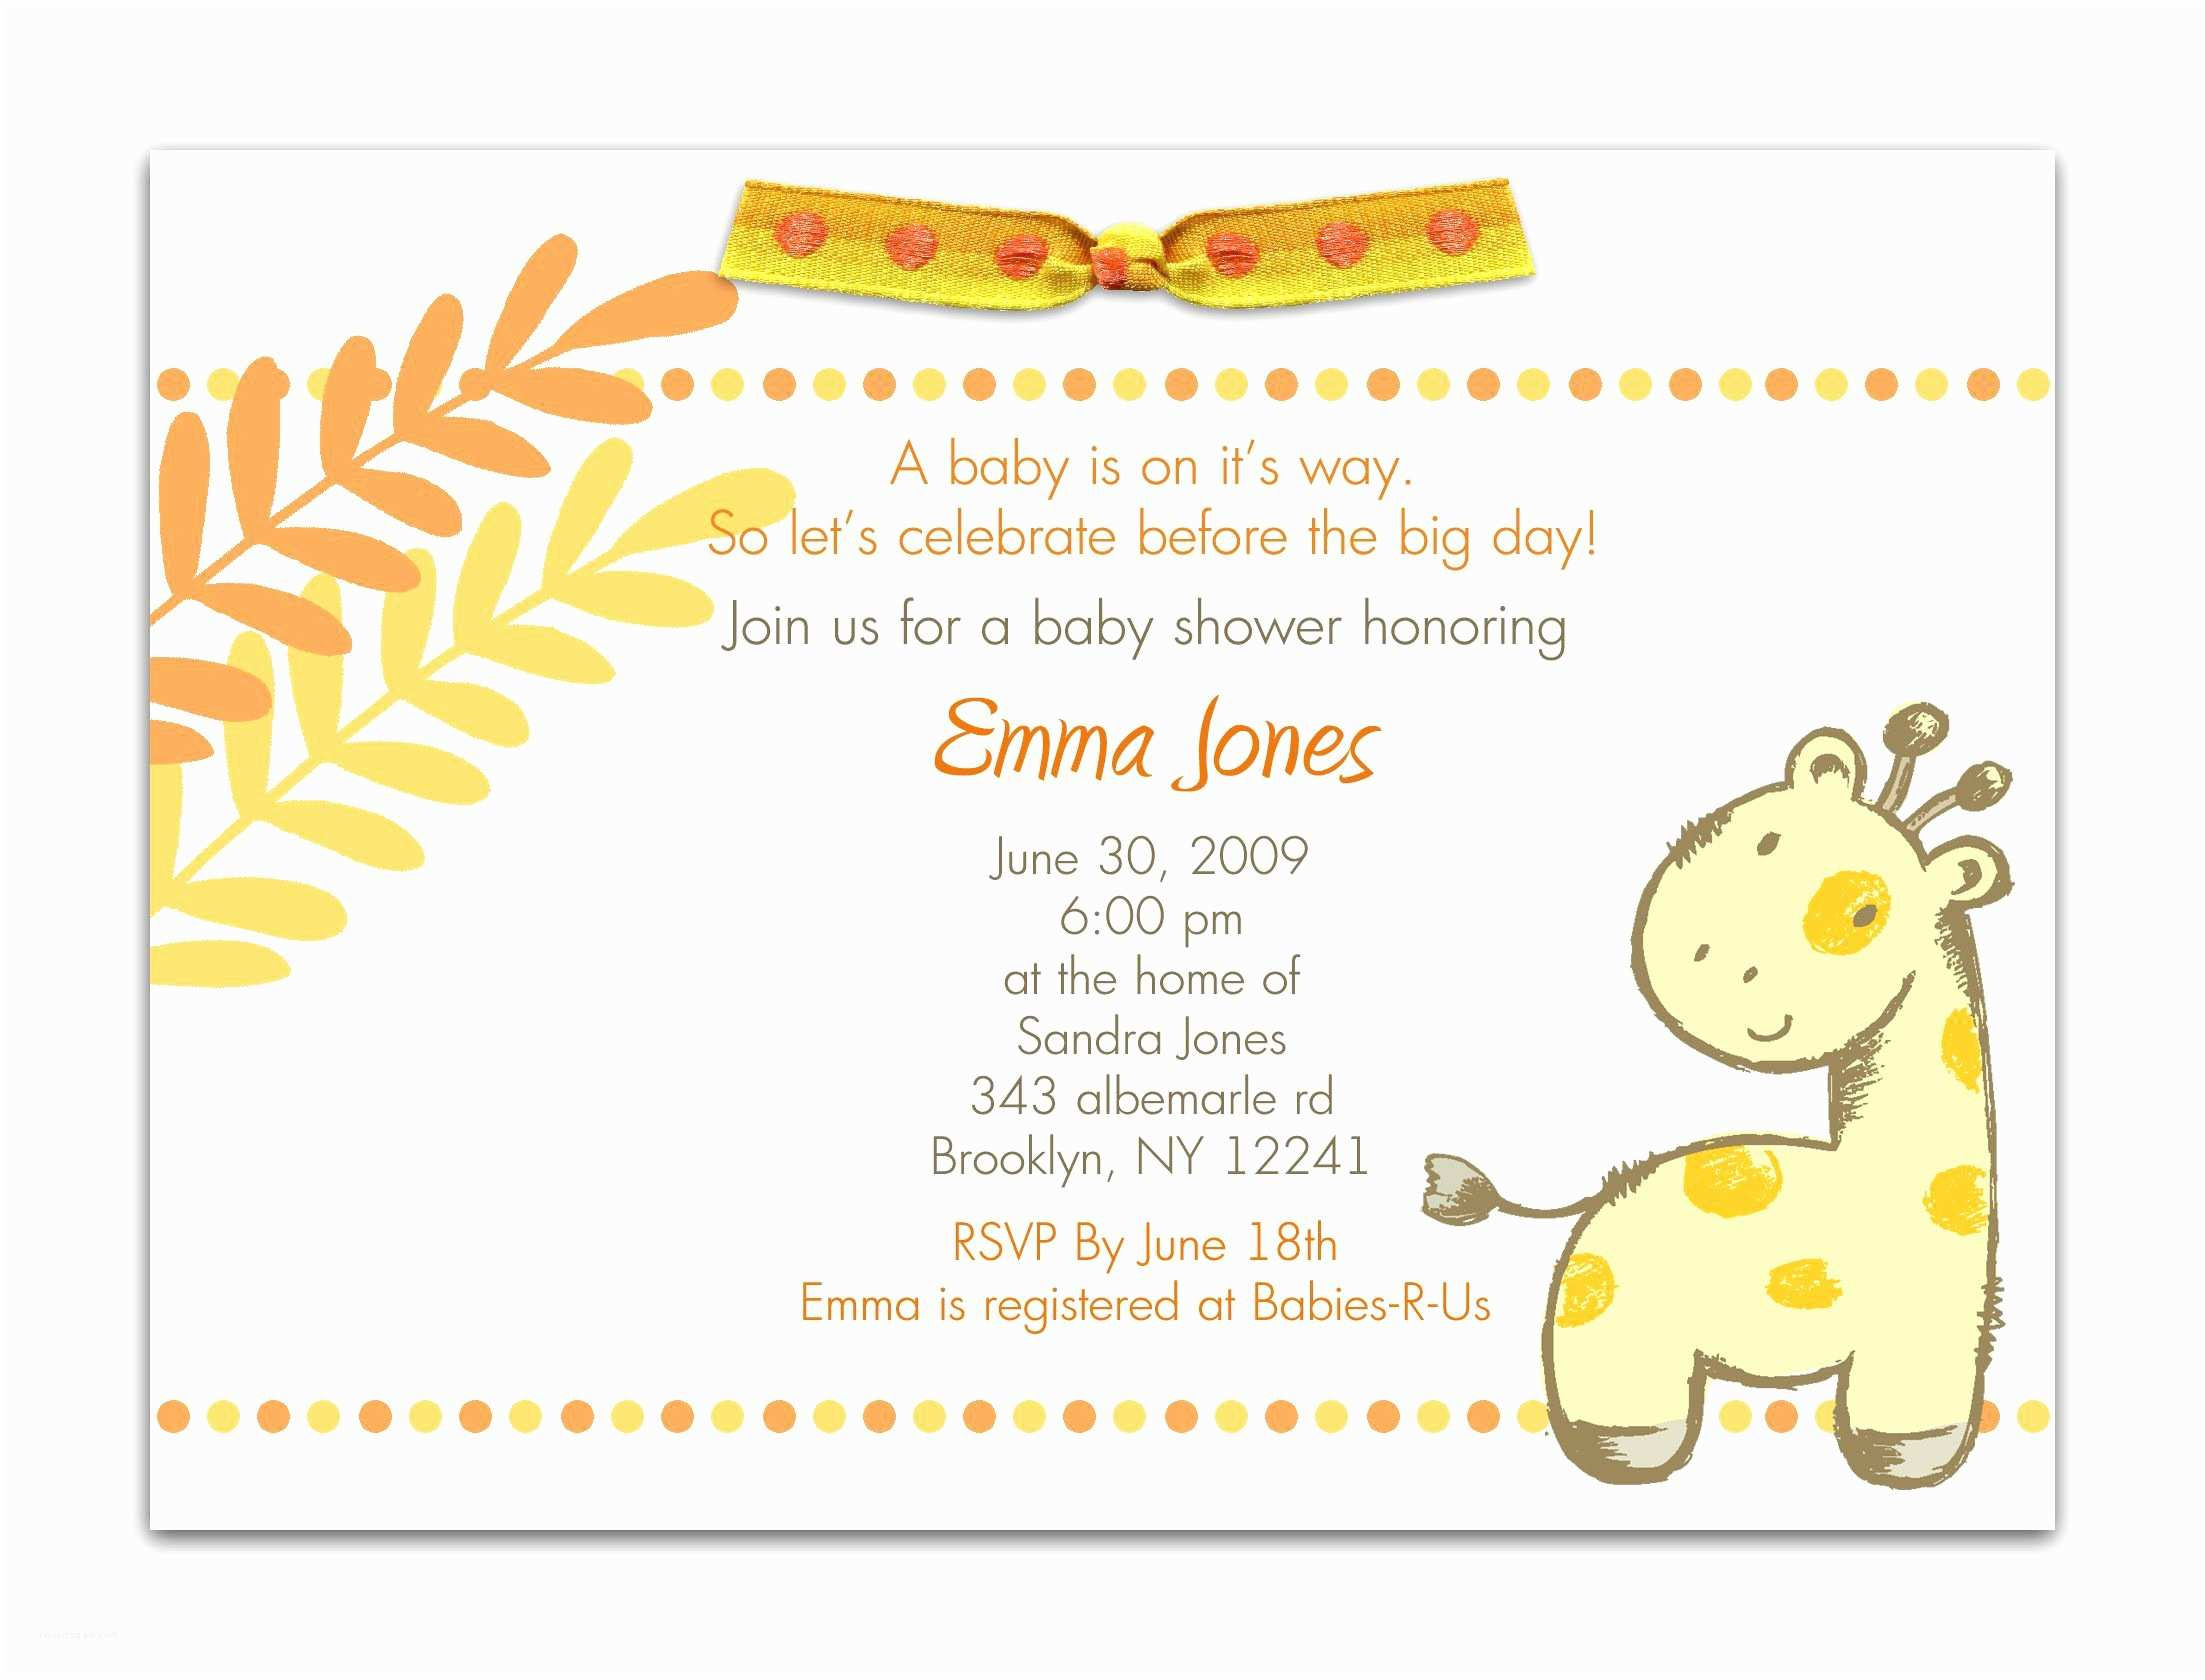 Baby Shower Invitation Examples Baby Shower Invitation Baby Shower Invitations Templates